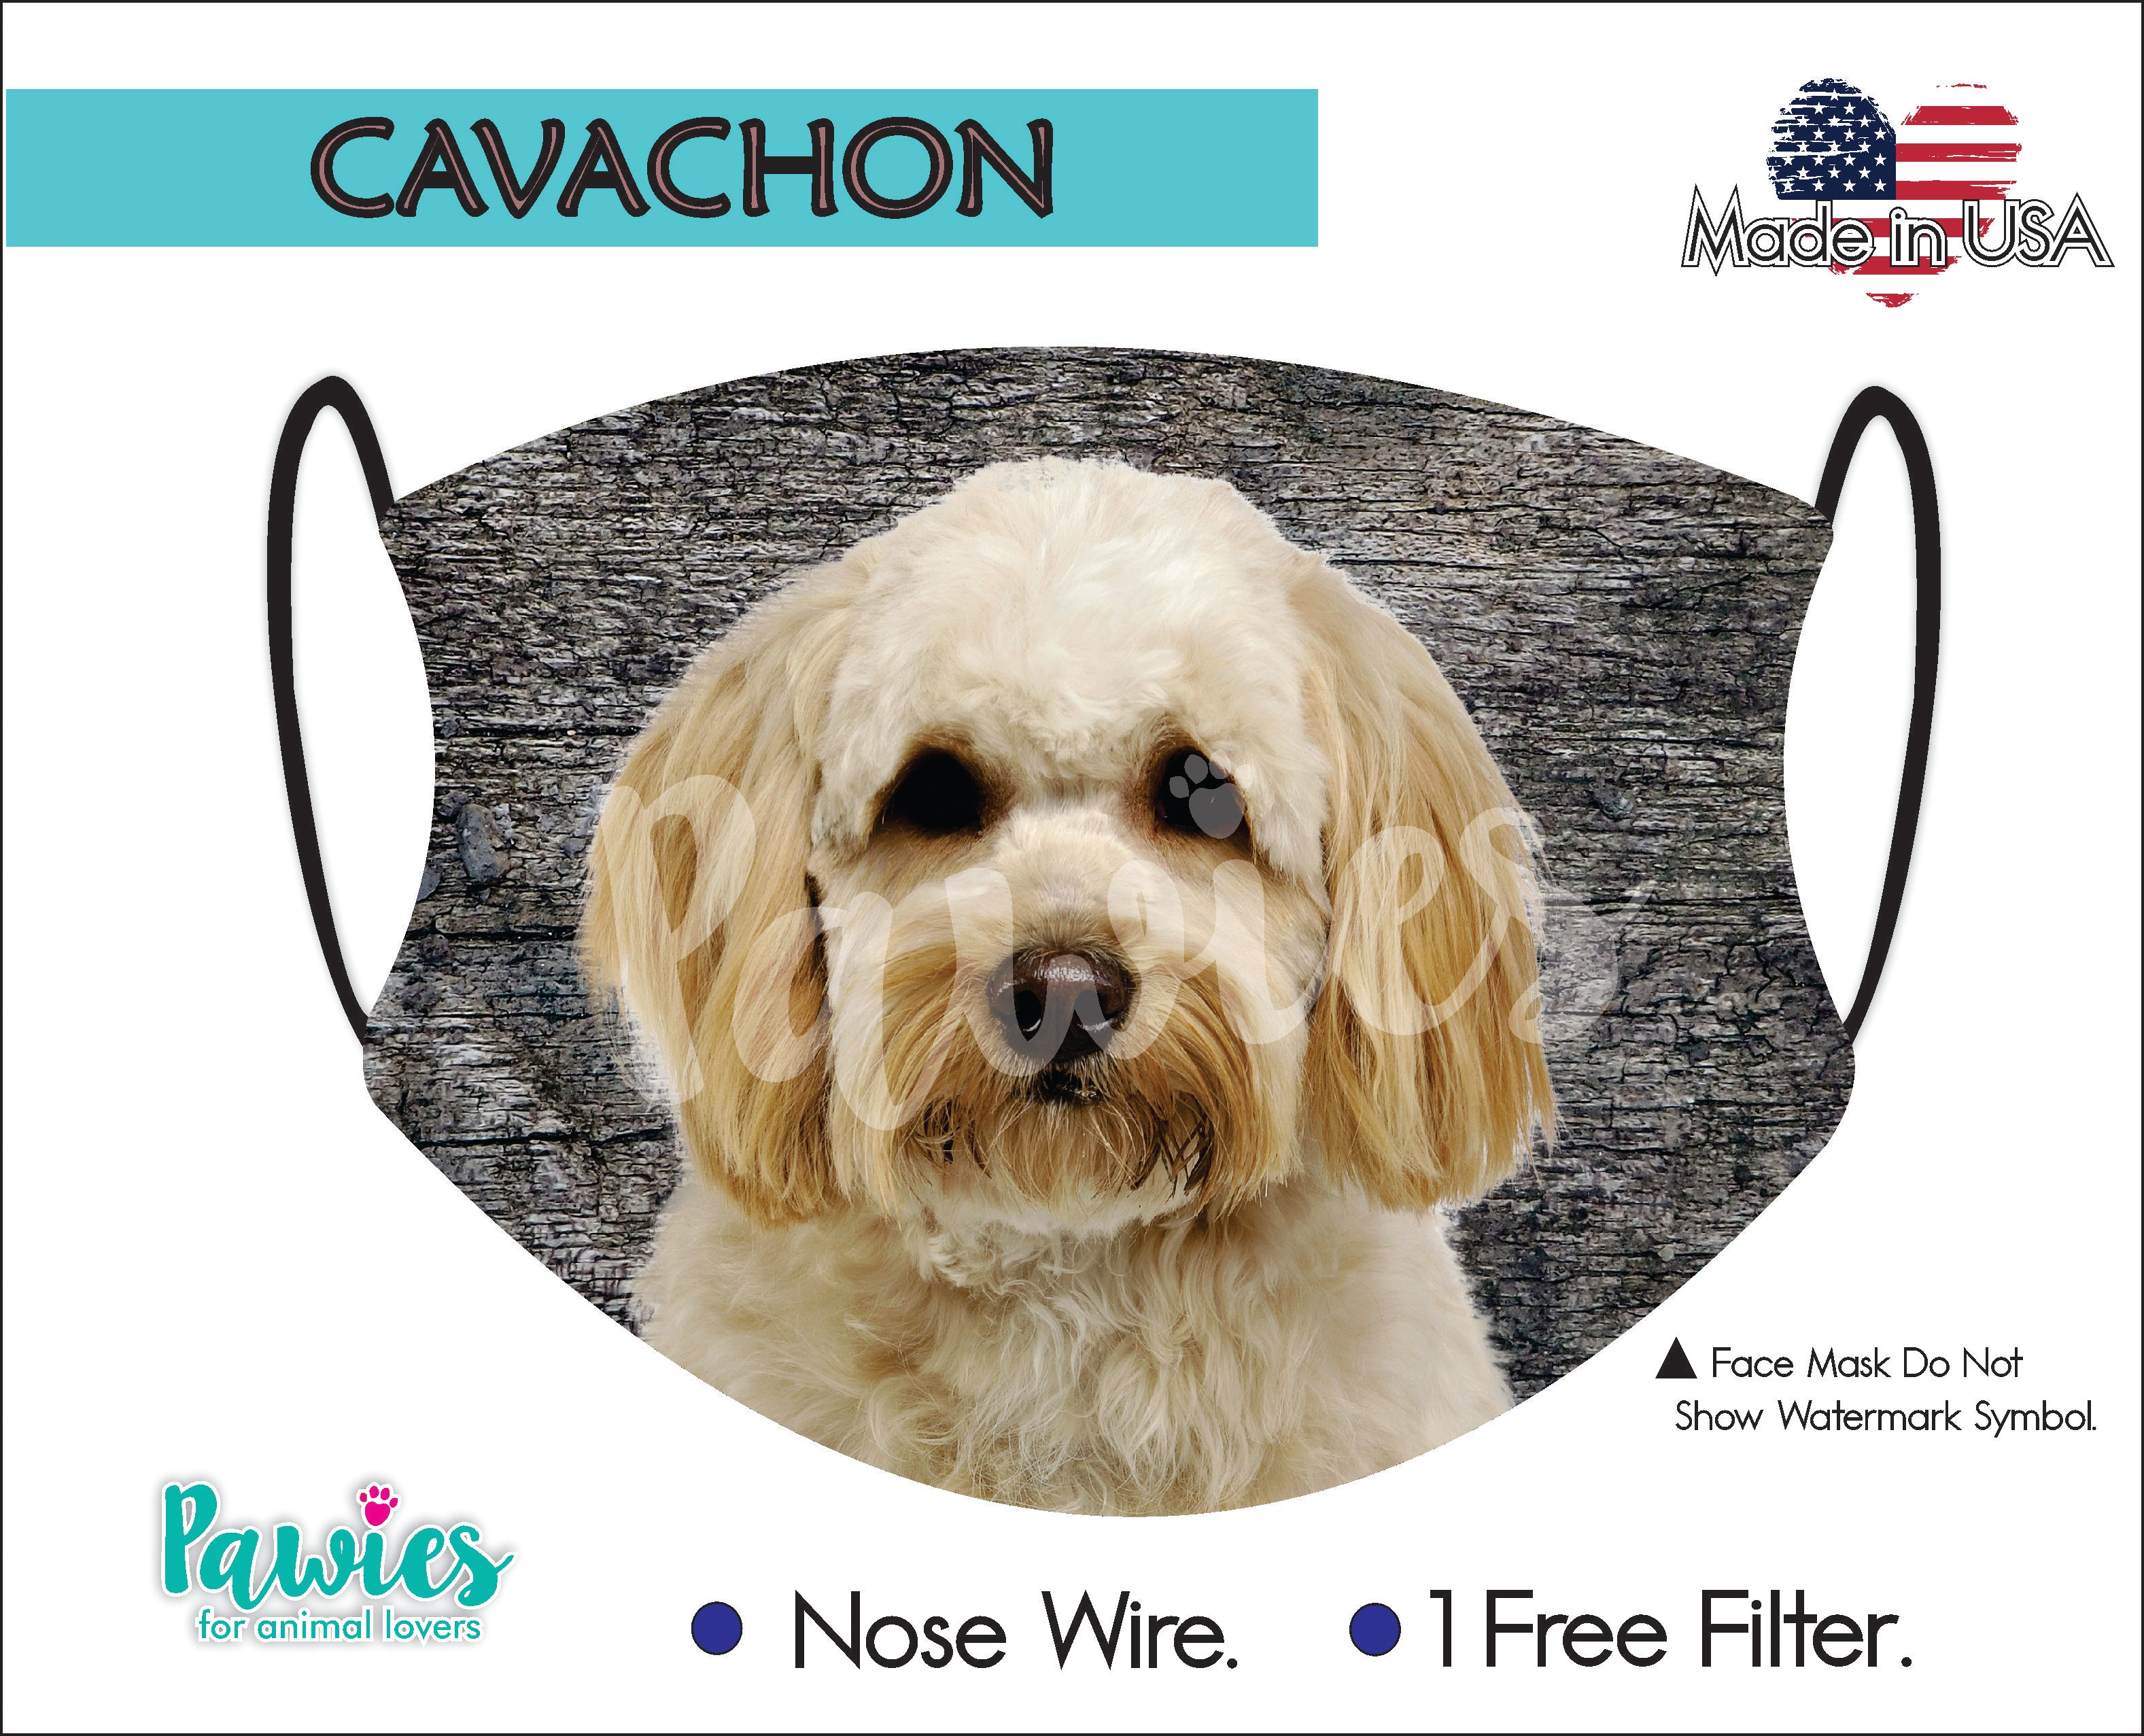 Cavachon Face Mask